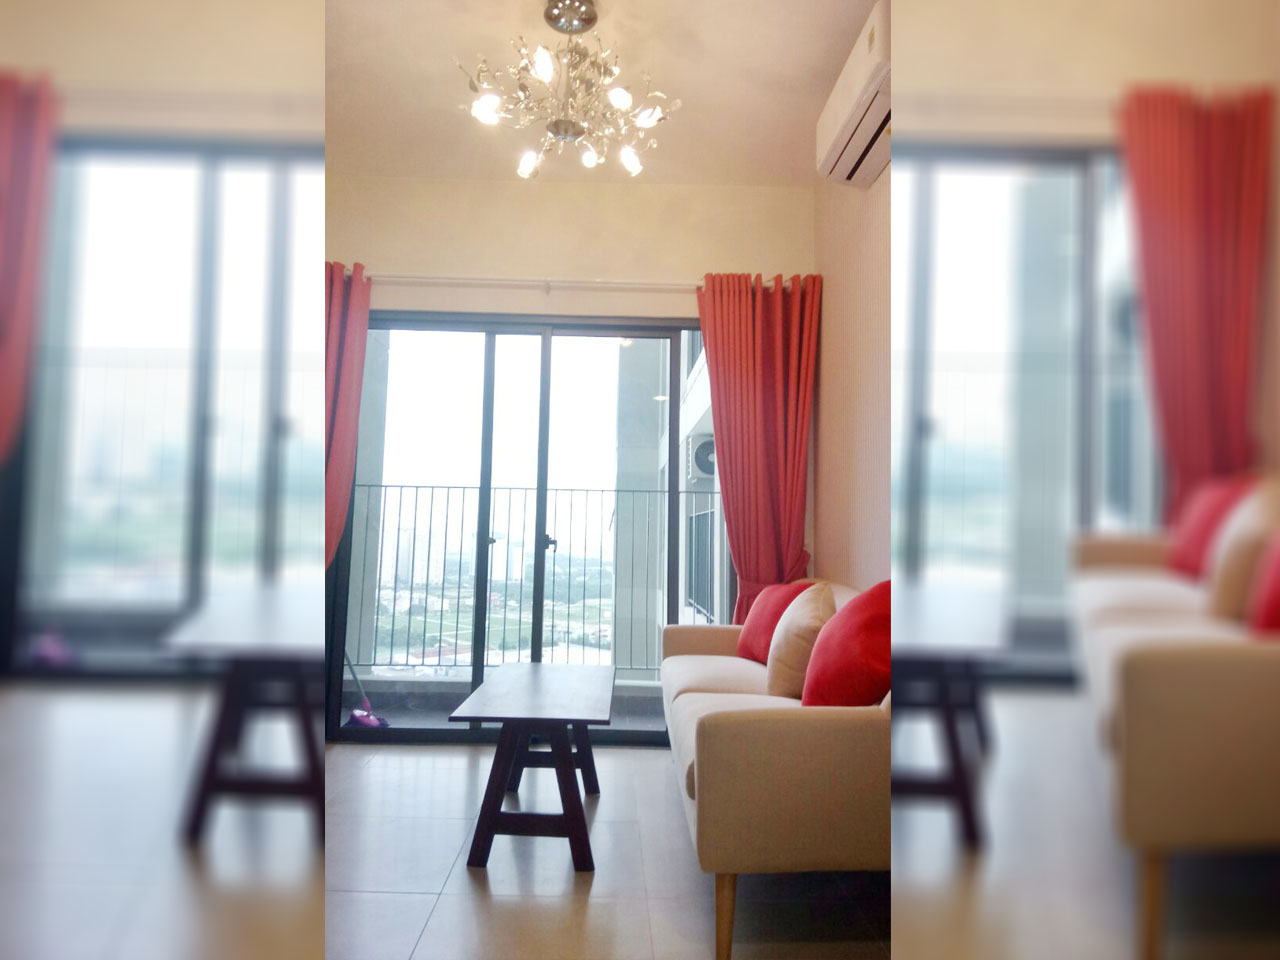 D214212 - Masteri Thao Dien Apartment For Rent - Best Price For Long-term - 2 bedroom